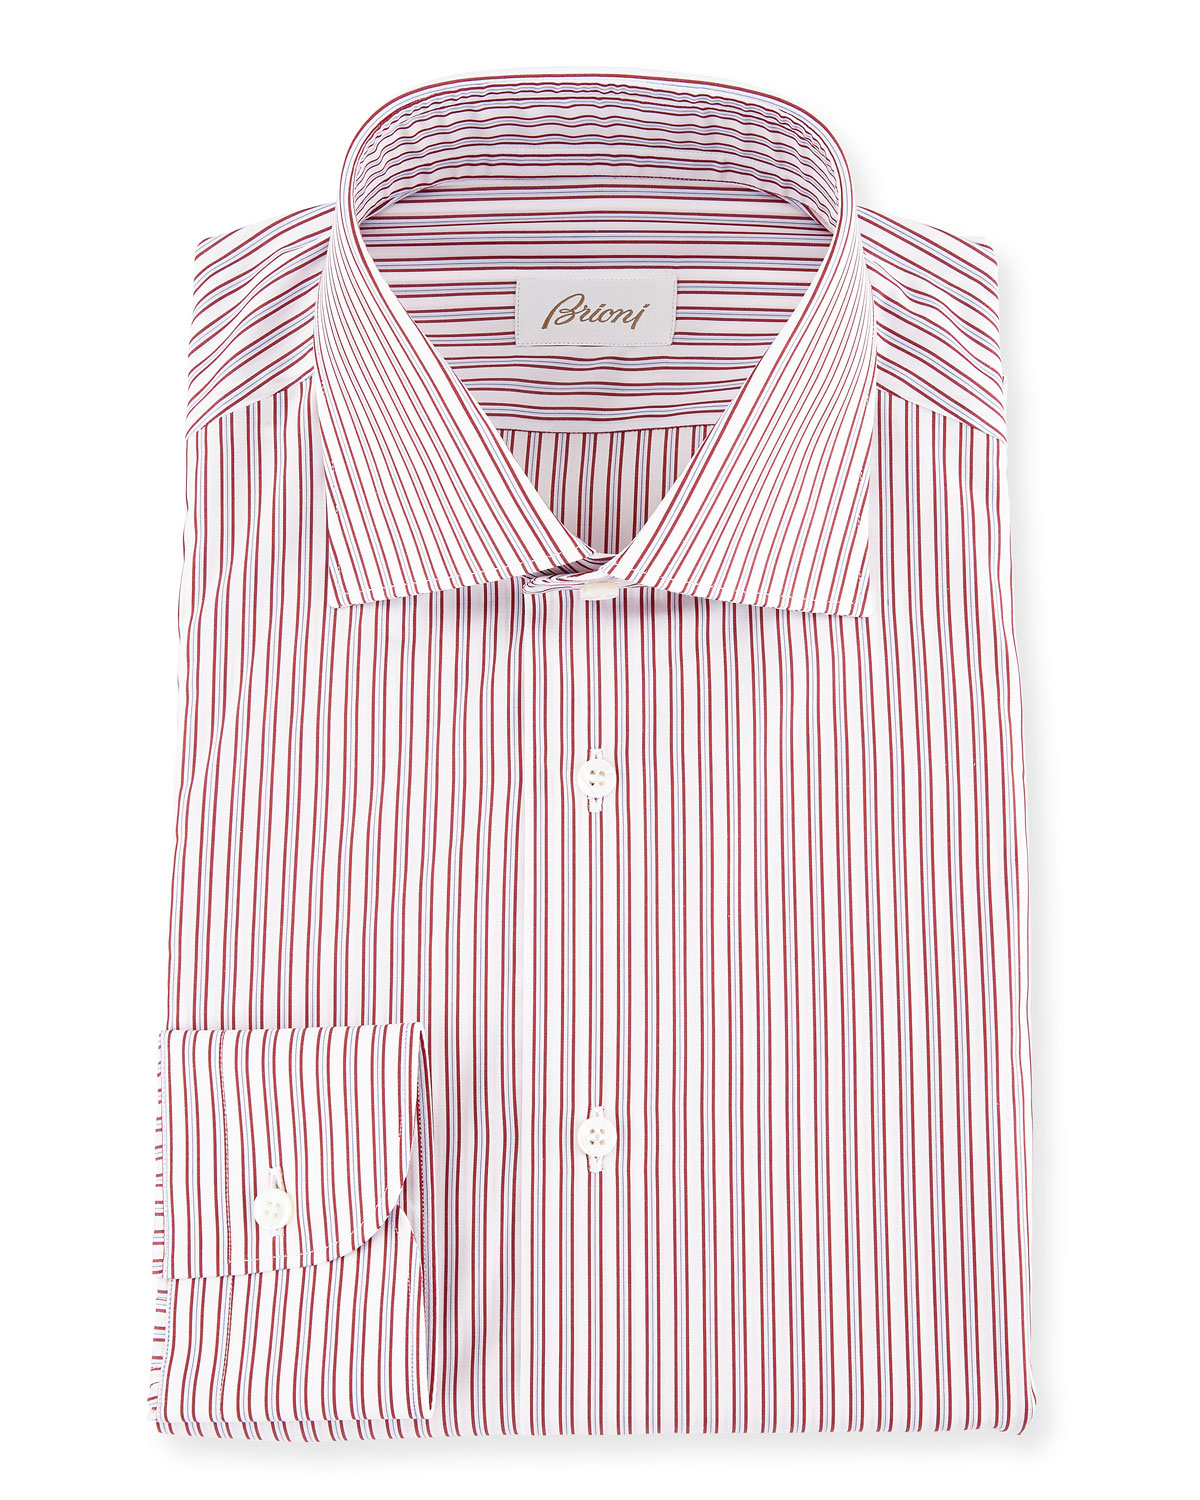 Brioni Two Tone Striped Dress Shirt Neiman Marcus